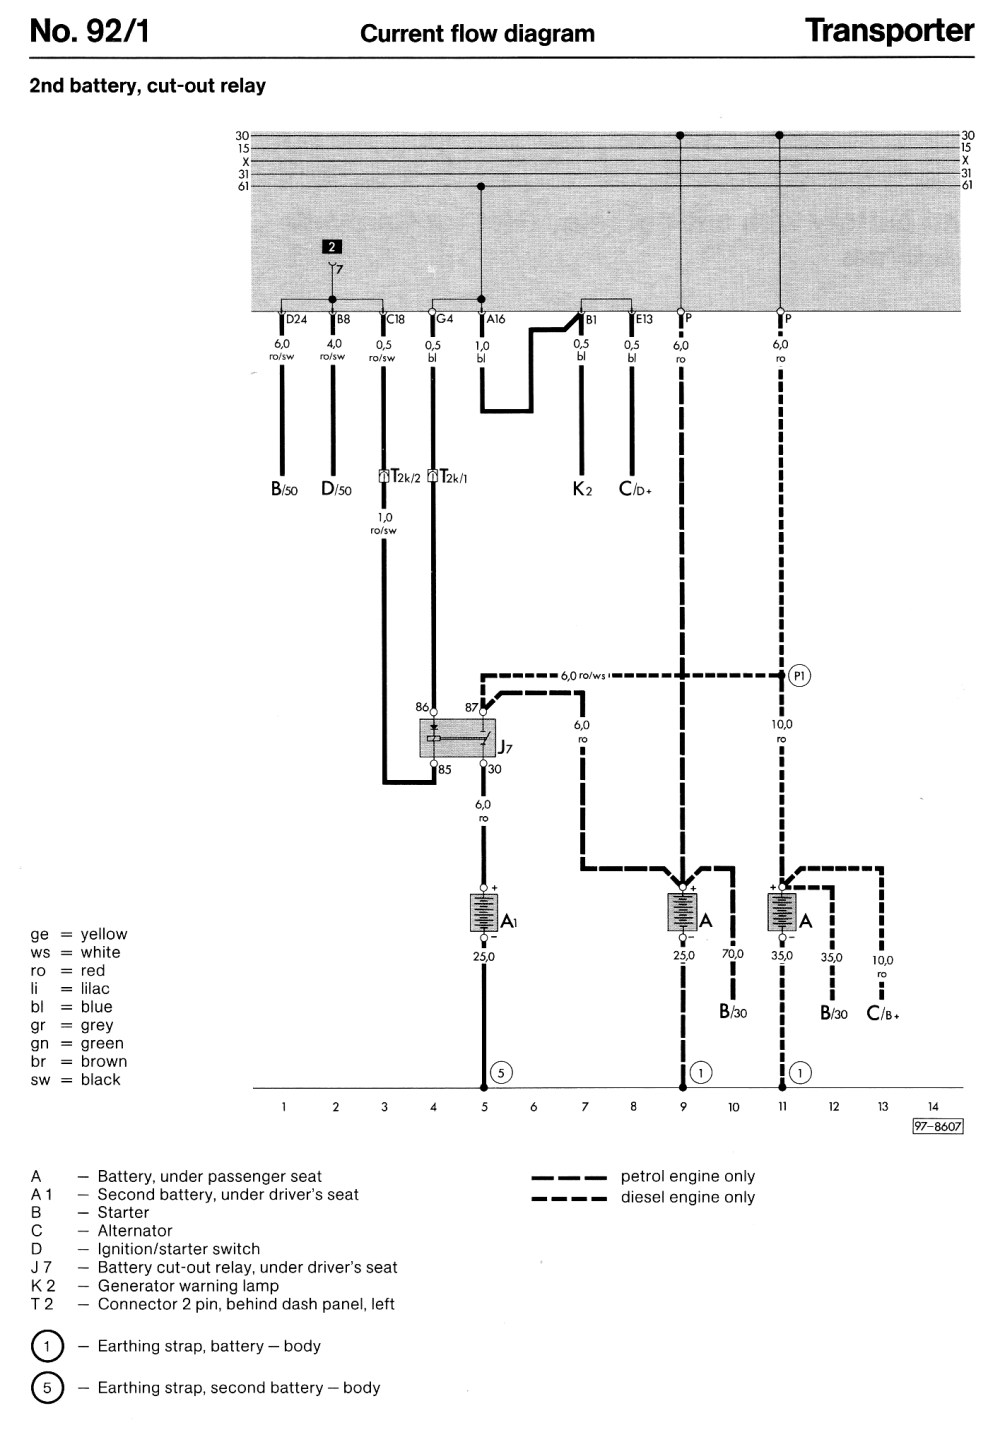 medium resolution of t3 light fixture wiring diagram wiring diagram paper warn halogen light wiring diagram